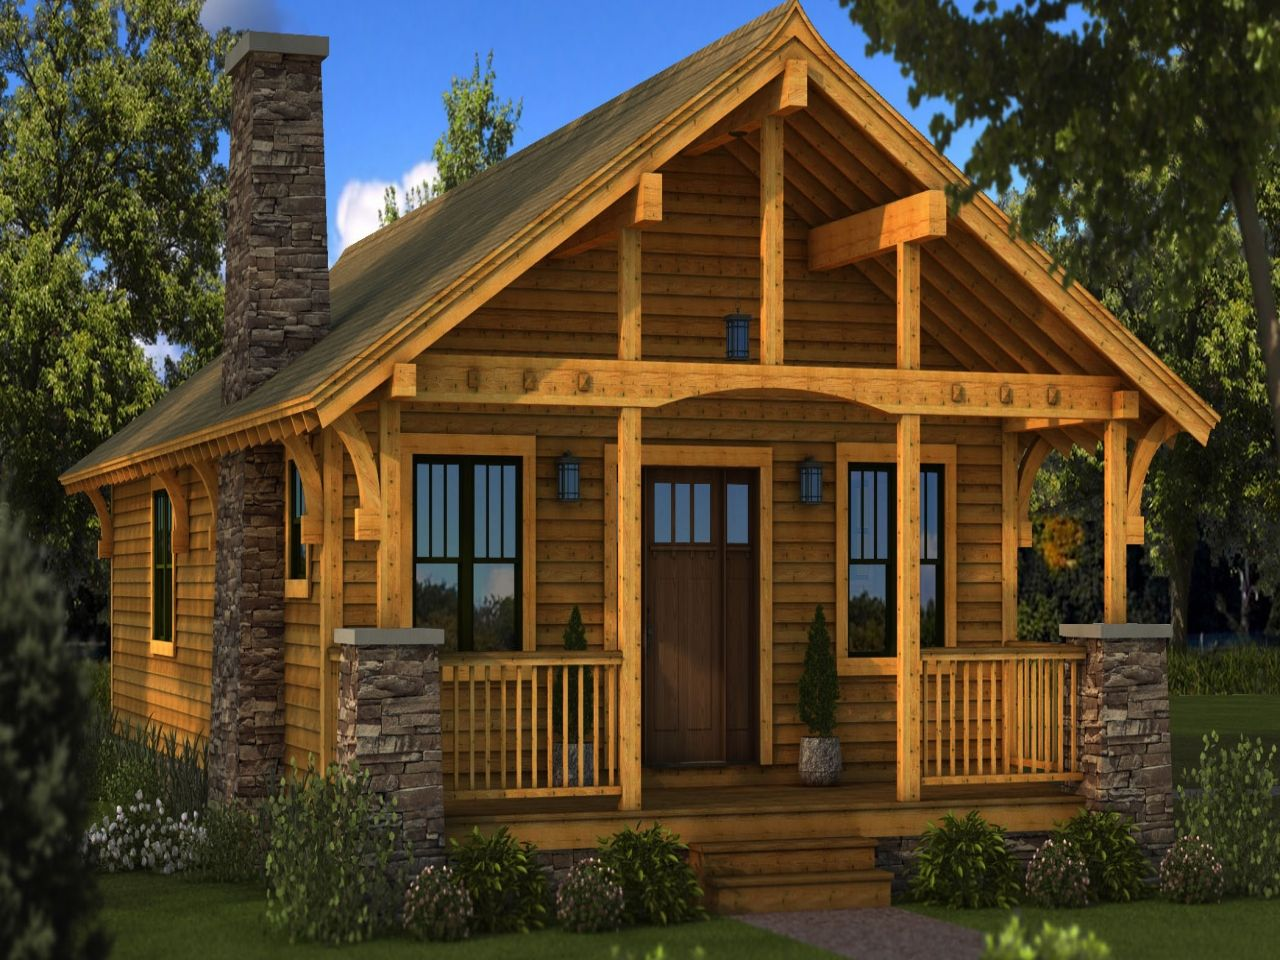 Small log cabin homes plans one story cabin plans Tiny house floor plan kit